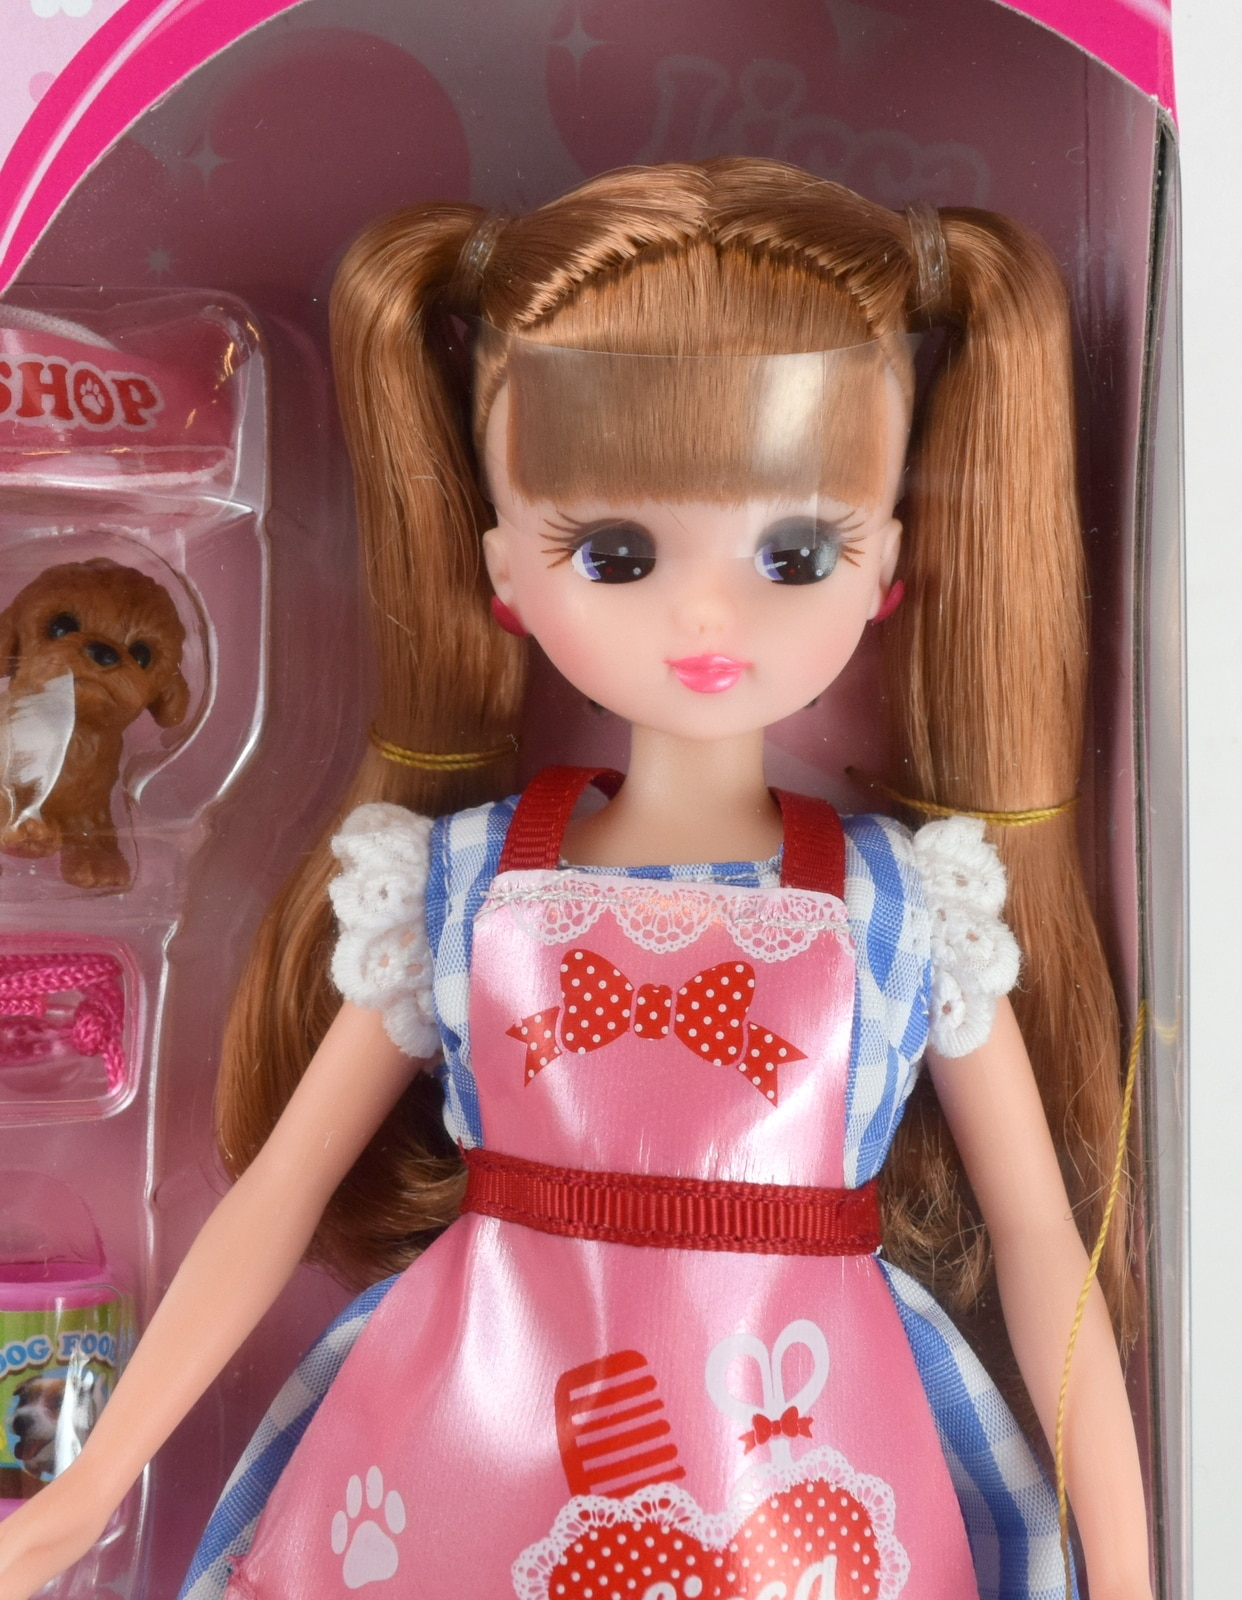 Rika chan doll LD-11 pet lover trimmer